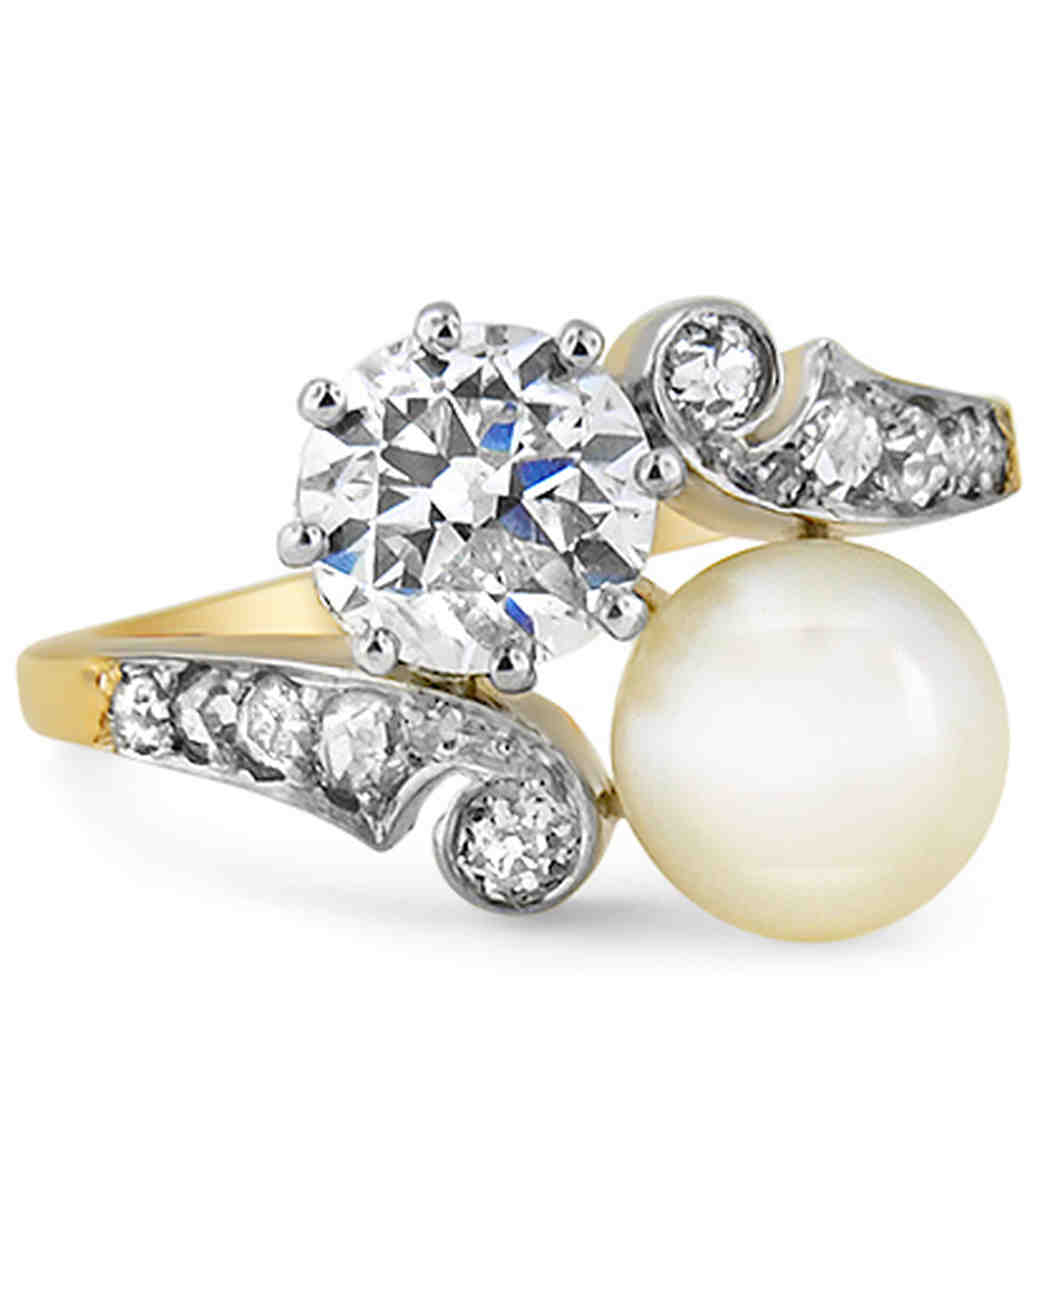 wedding to pearls pin your engagement ideas cute ring match nail